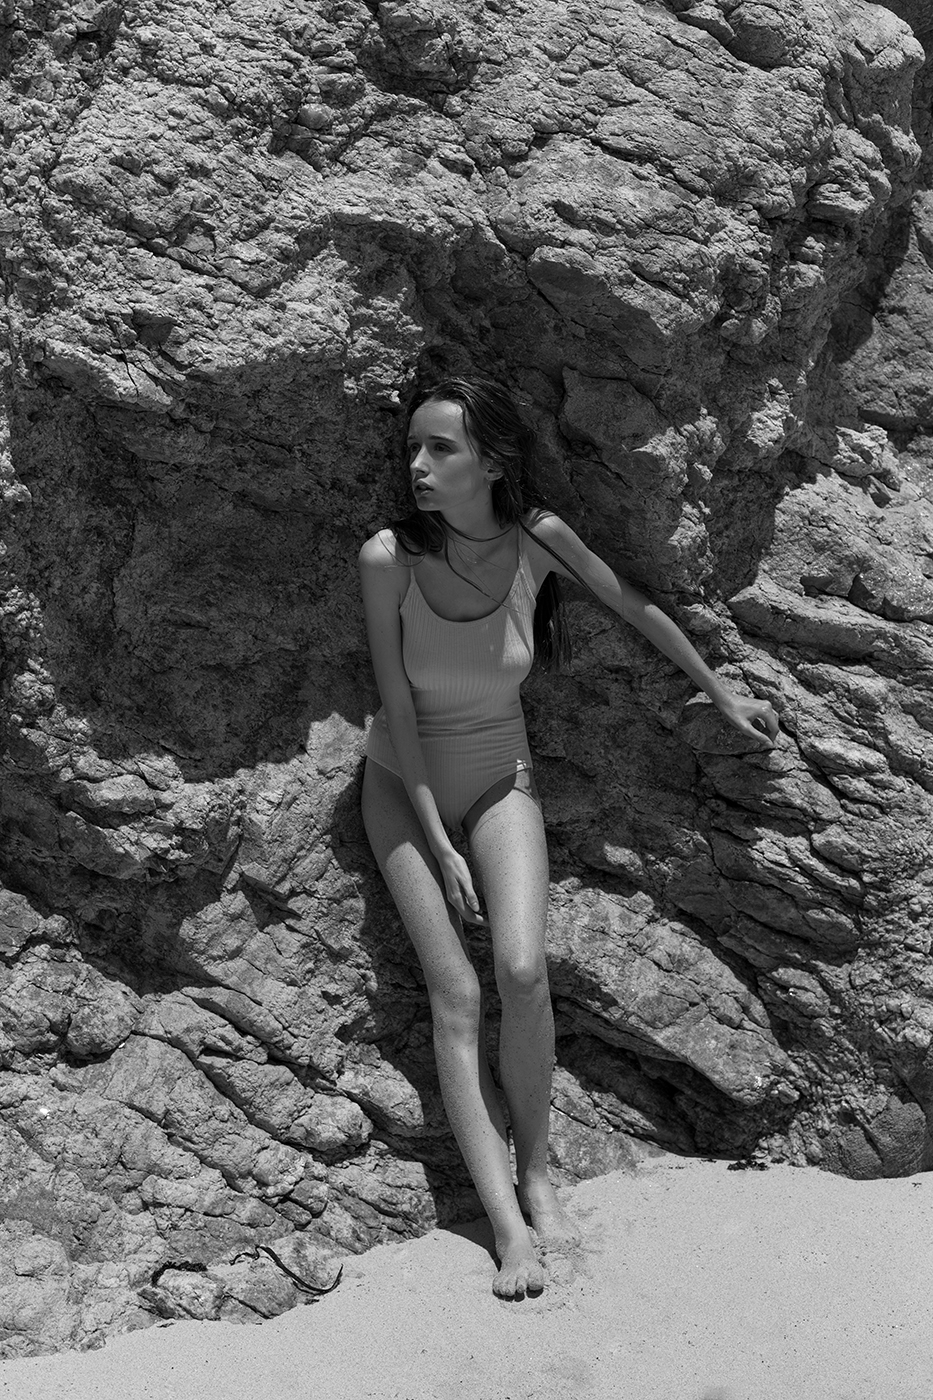 Mathilde Editorials  photoshoot photographer nude art models model lionsmag lions magazine editorial body blackandwhite bikini beachwear beach Arthur Hubert Legrand art   - LIONS - premium nude photography magazineMathilde Editorials  photoshoot photographer nude art models model lionsmag lions magazine editorial body blackandwhite bikini beachwear beach Arthur Hubert Legrand art   - LIONS - premium nude photography magazineMathilde Editorials  photoshoot photographer nude art models model lionsmag lions magazine editorial body blackandwhite bikini beachwear beach Arthur Hubert Legrand art   - LIONS - premium nude photography magazineMathilde Editorials  photoshoot photographer nude art models model lionsmag lions magazine editorial body blackandwhite bikini beachwear beach Arthur Hubert Legrand art   - LIONS - premium nude photography magazine